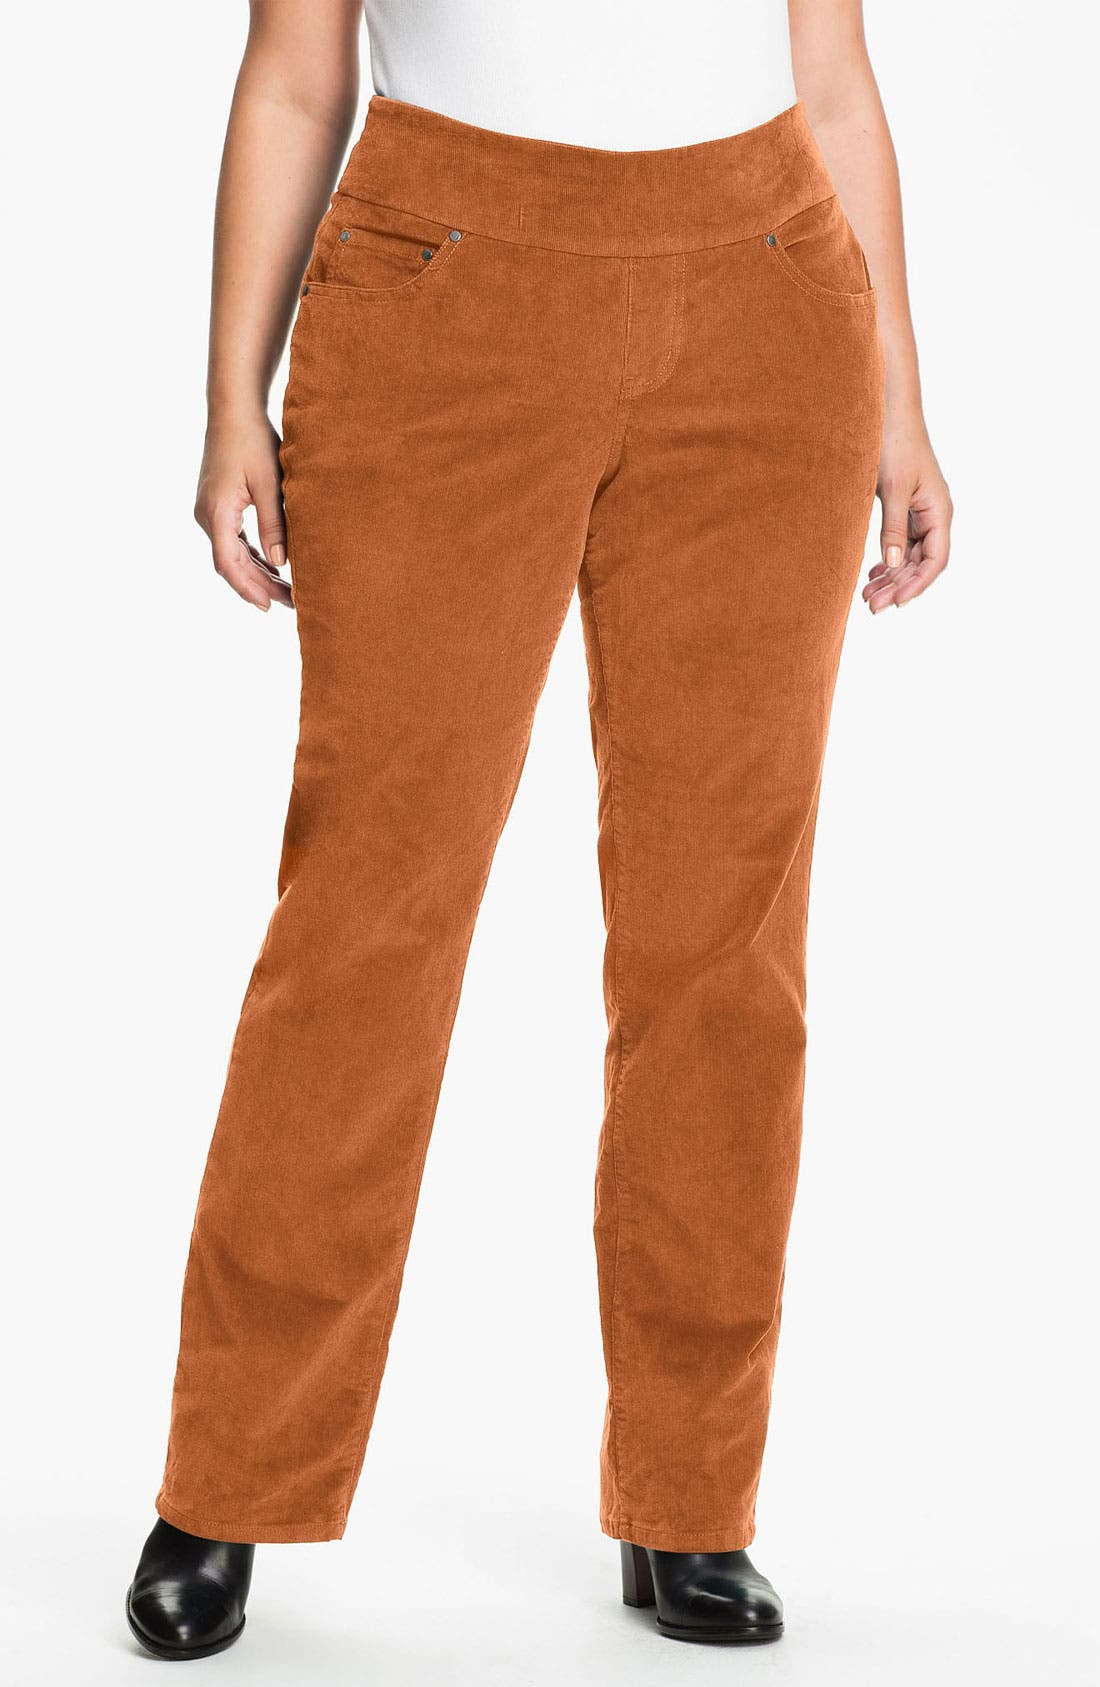 Alternate Image 1 Selected - Jag Jeans 'Peri' Straight Leg Corduroy Pants (Plus)